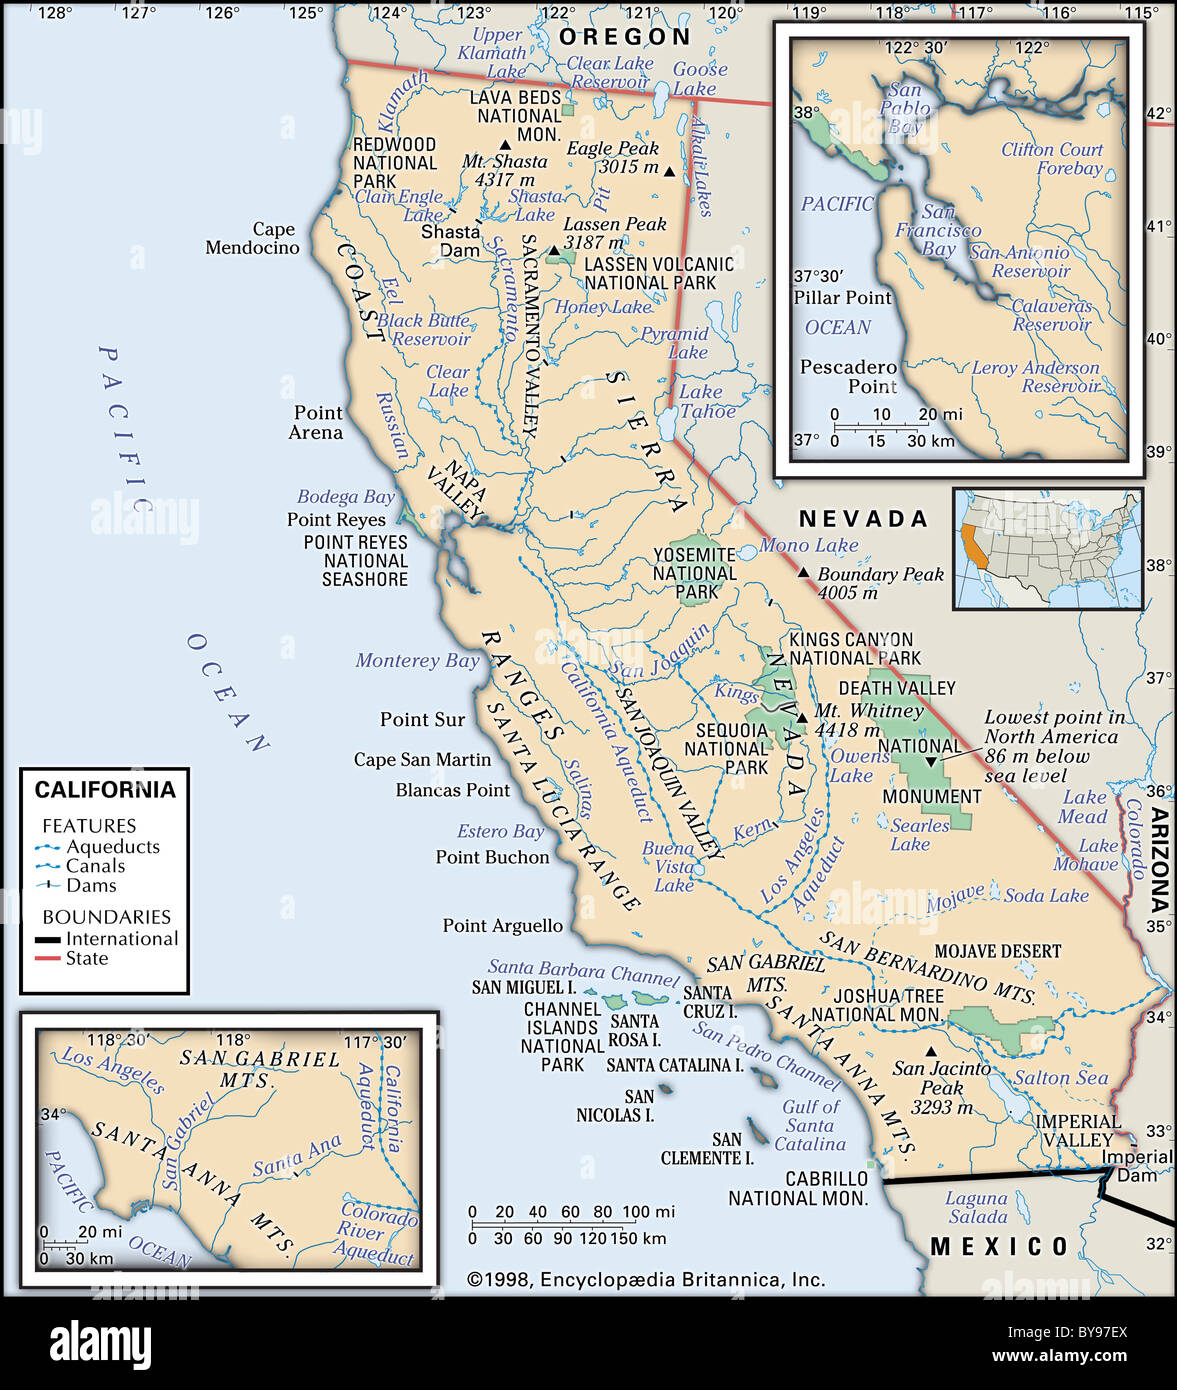 Physical map of California - Stock Image